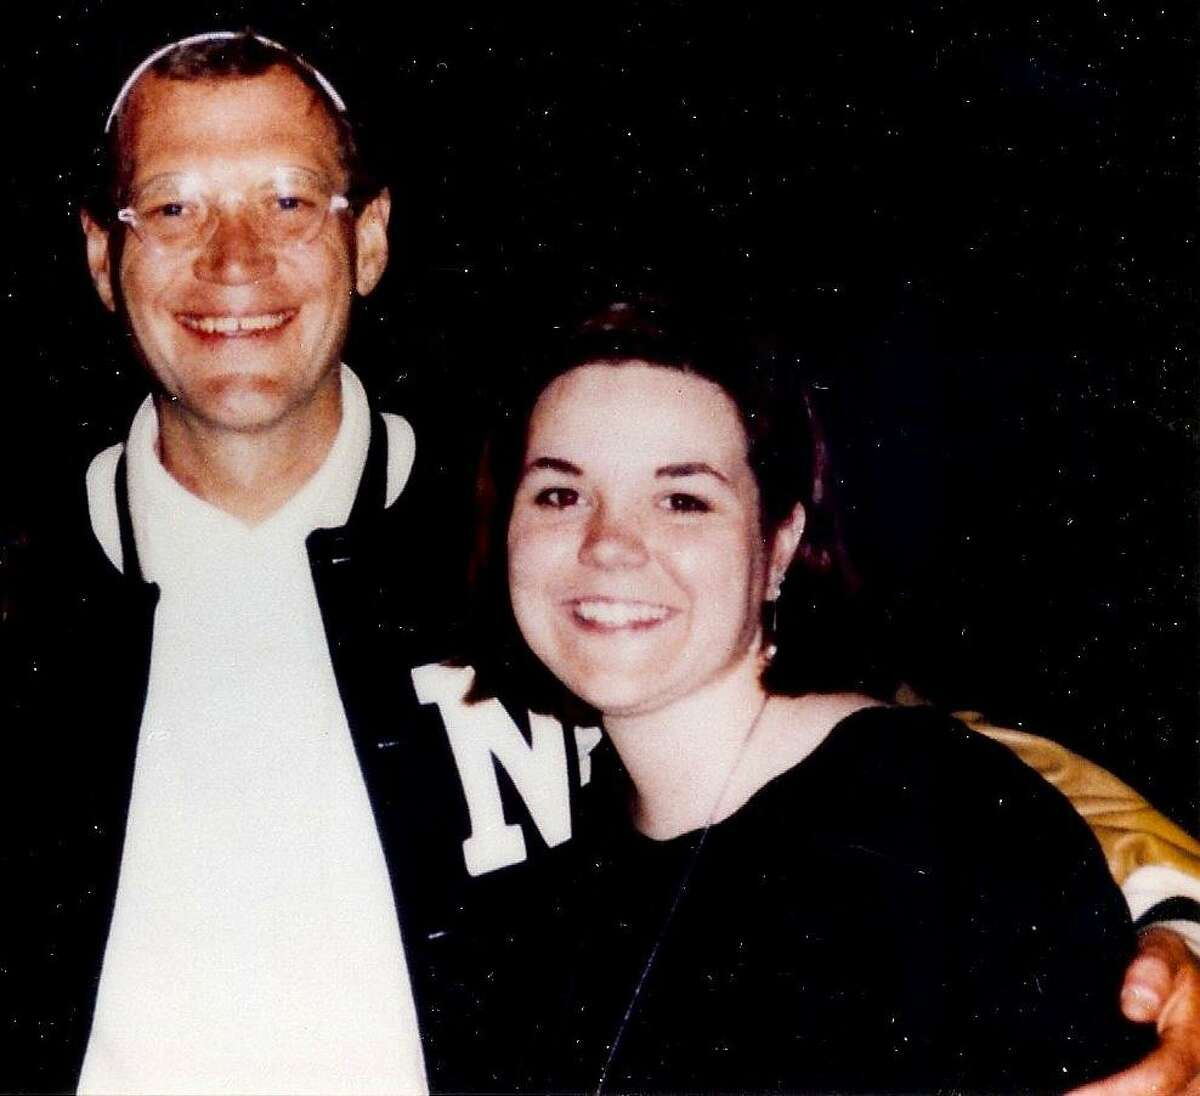 Westport resident Caissie St. Onge with David Letterman circa 1995.